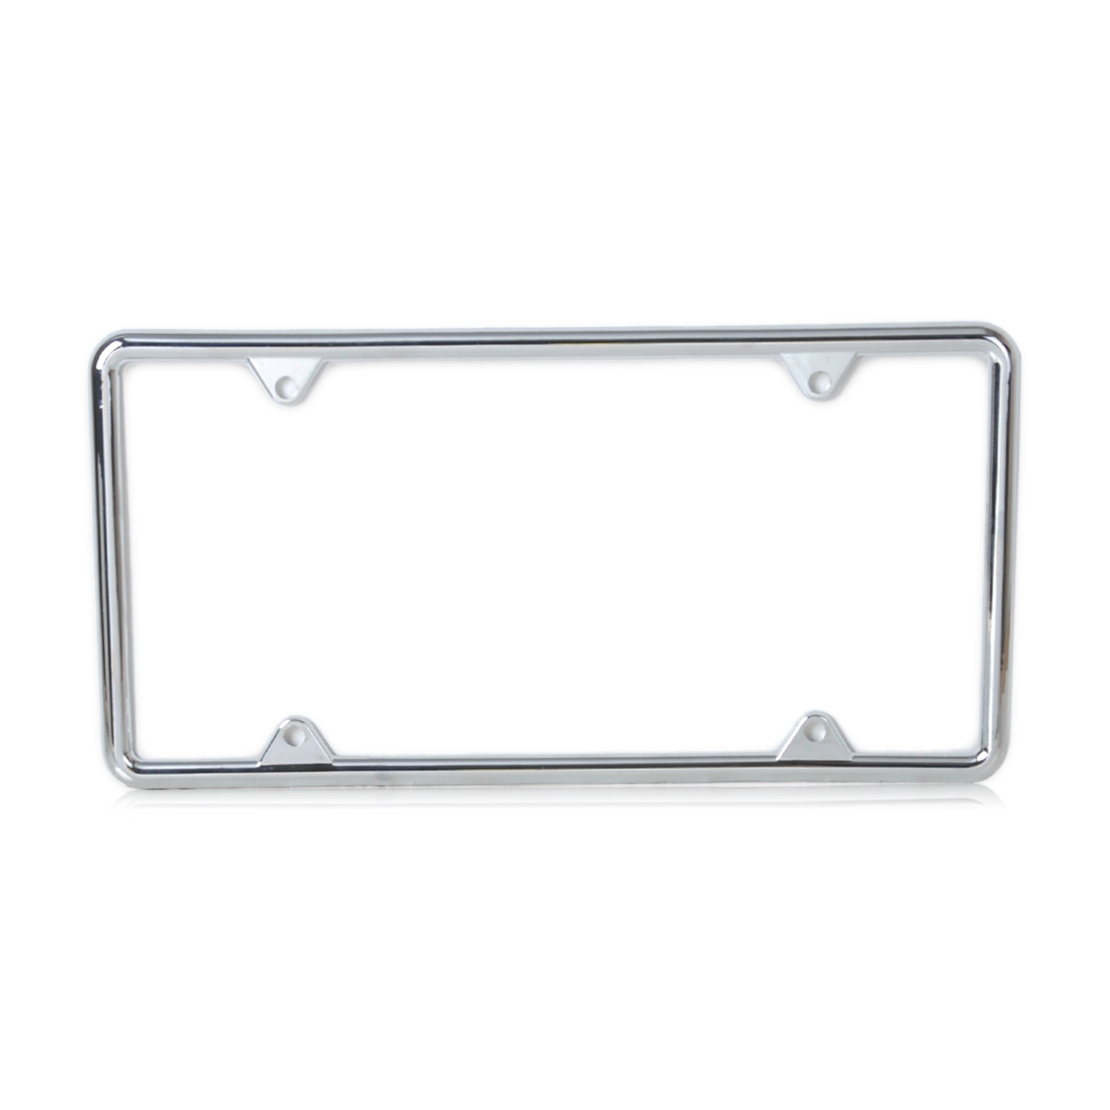 Audi A4 License Plate Frame: Popular Audi A4 License Plate Frame-Buy Cheap Audi A4